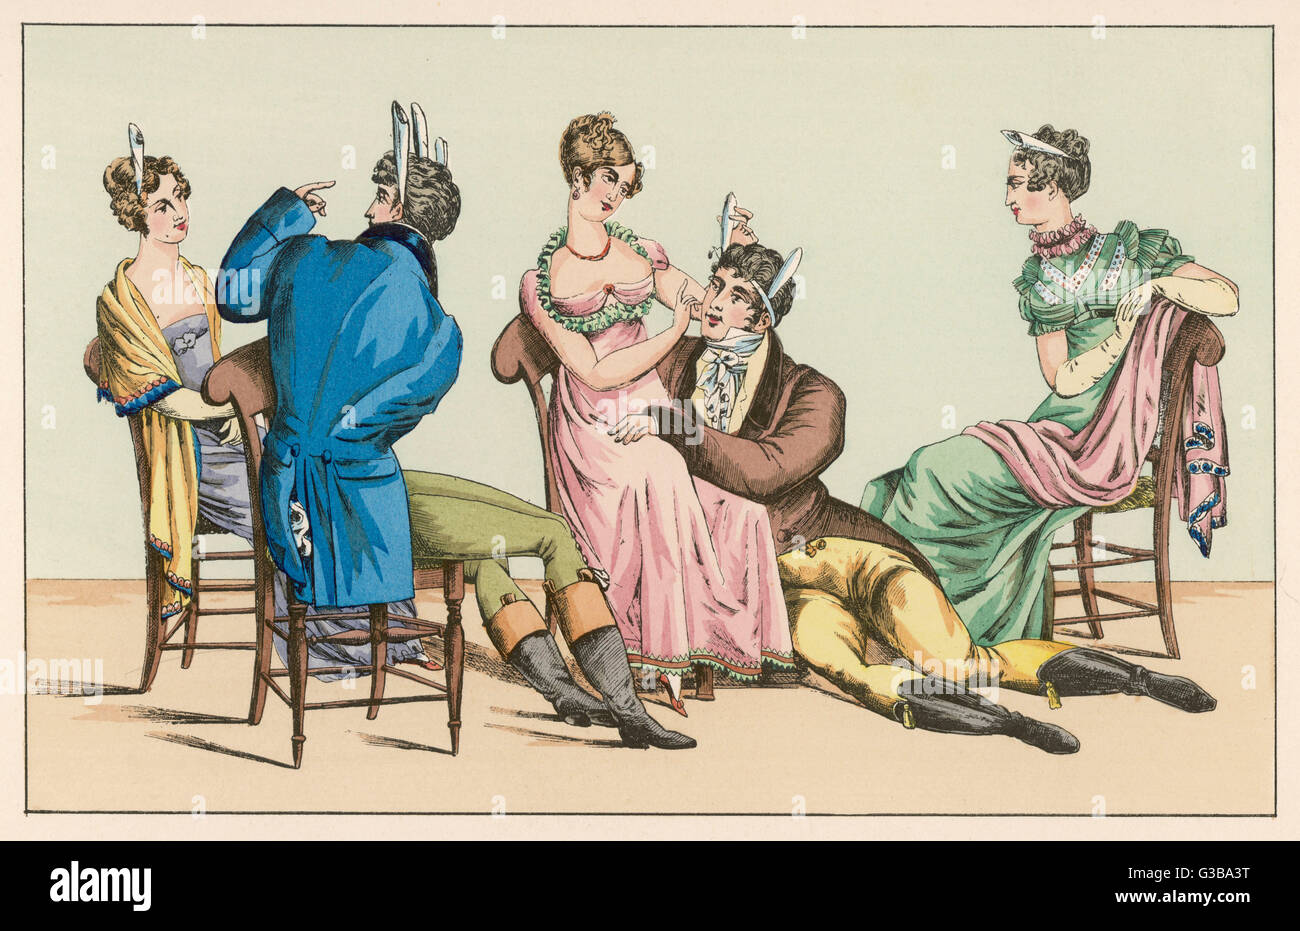 'Le Chevalier Gentil', a  French parlour game involving  repeated phrases        Date: Early ninteenth century - Stock Image